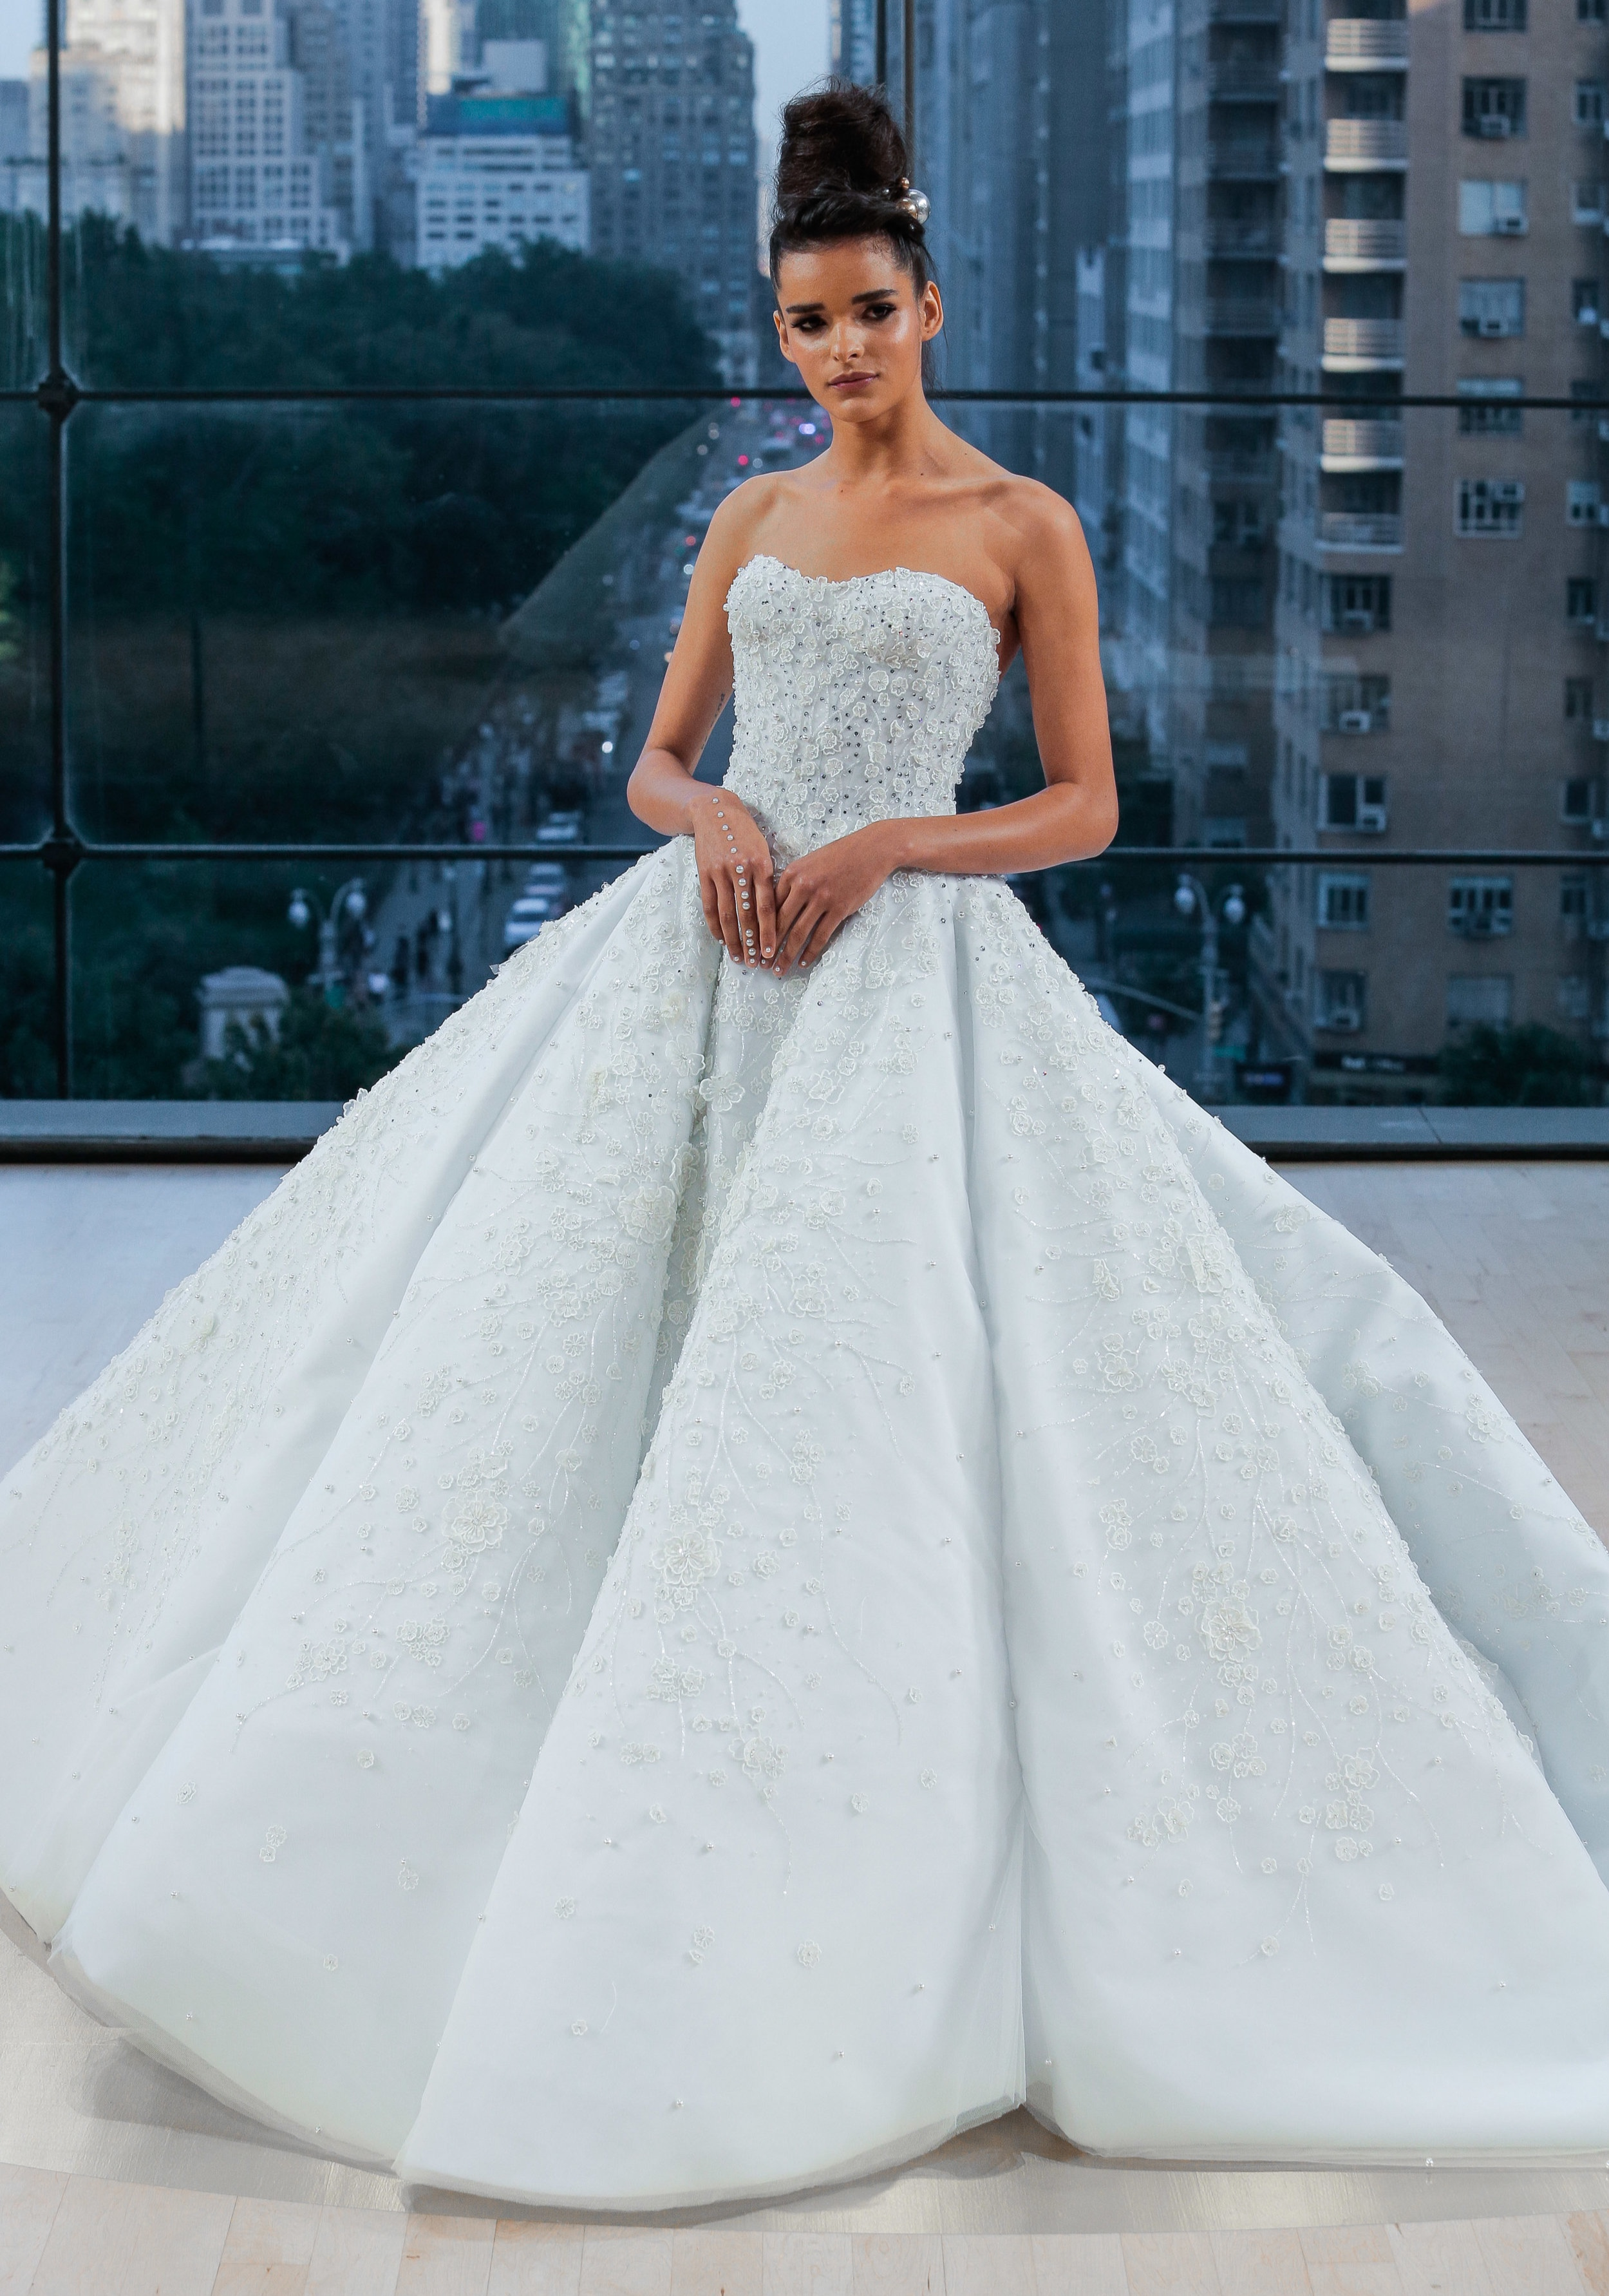 Bridal Fall 2018 Couture   TIFFANY    INQUIRE